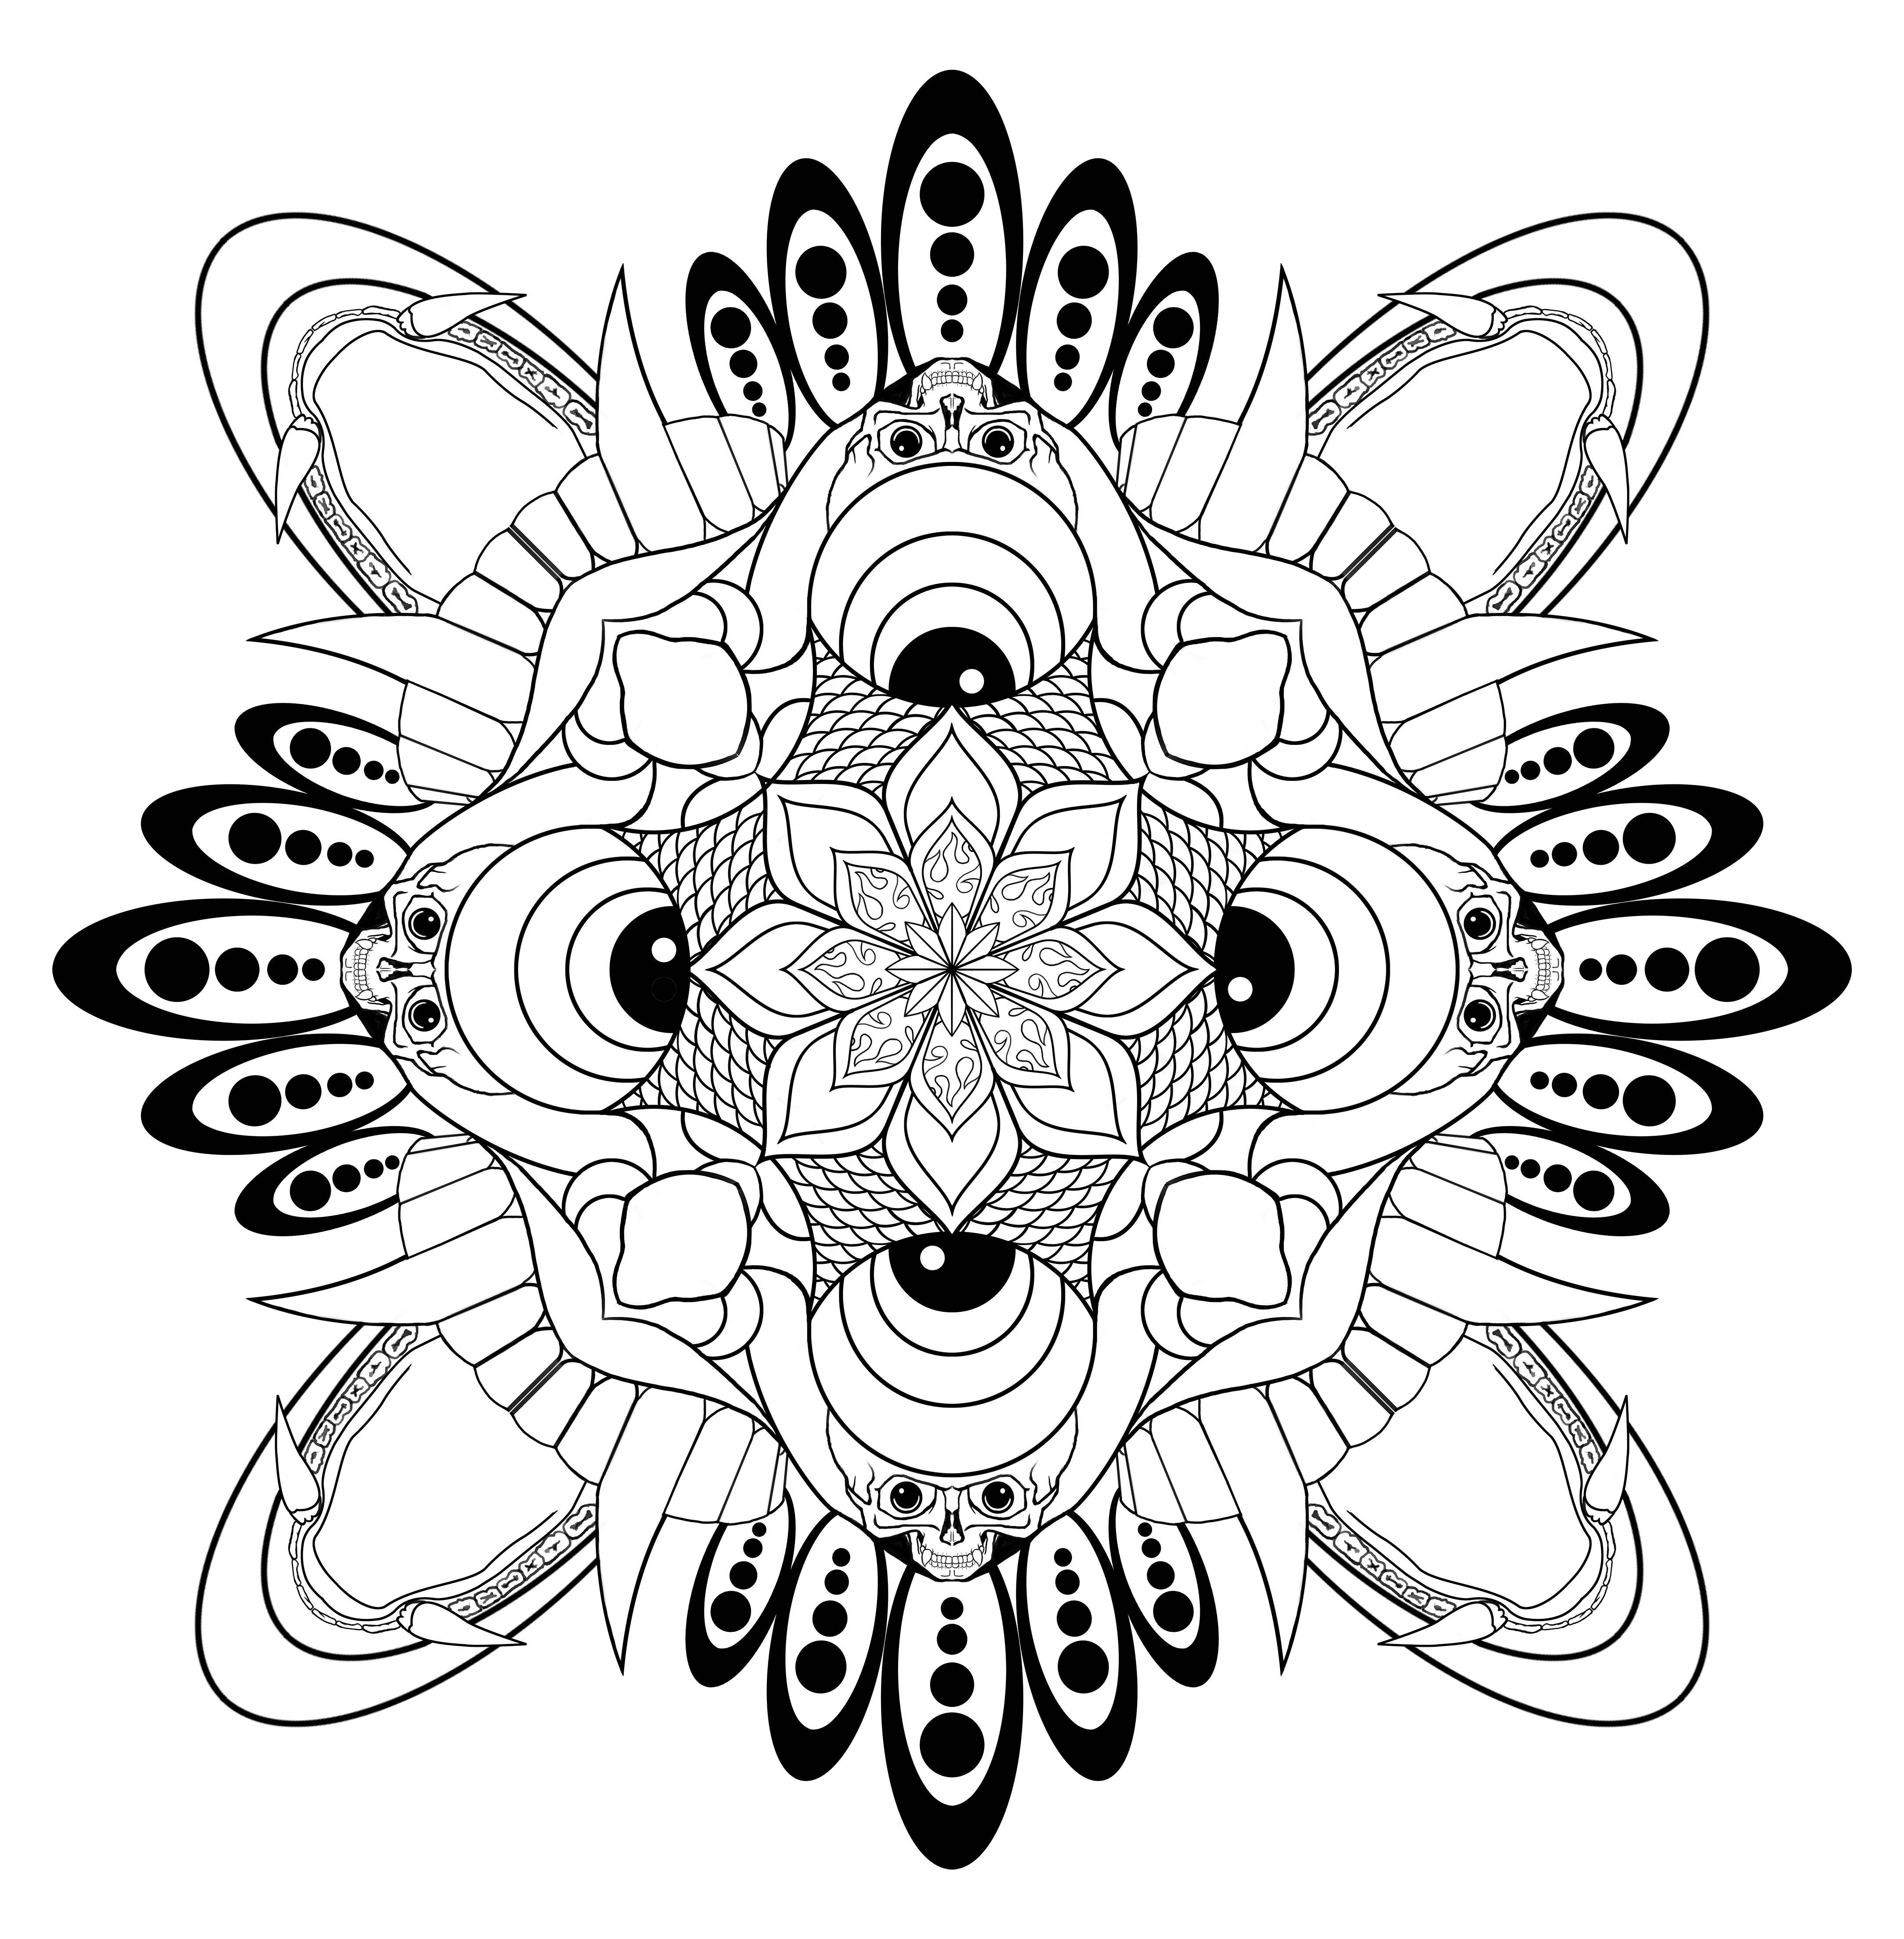 Here Is The Line Art Version Of My Mandala On To Color